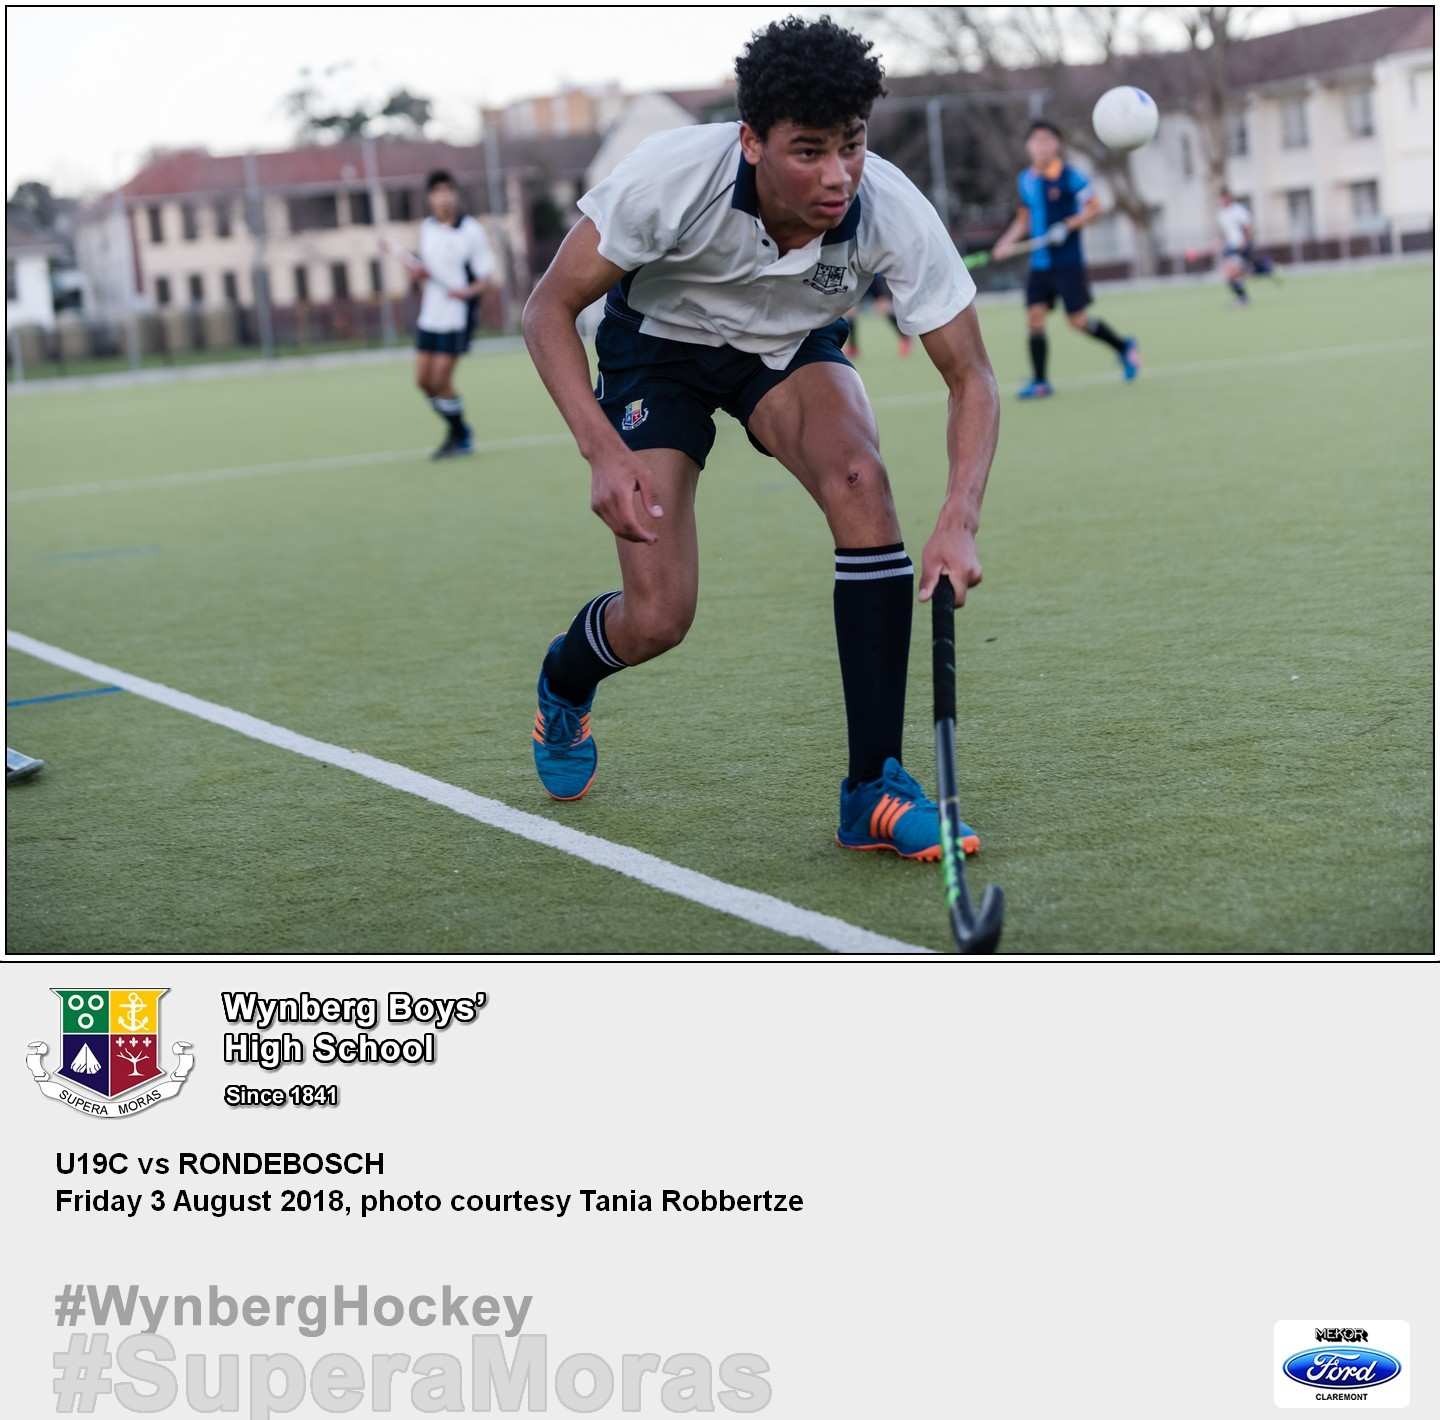 U19C vs Rondebosch, Friday 3 August 2018